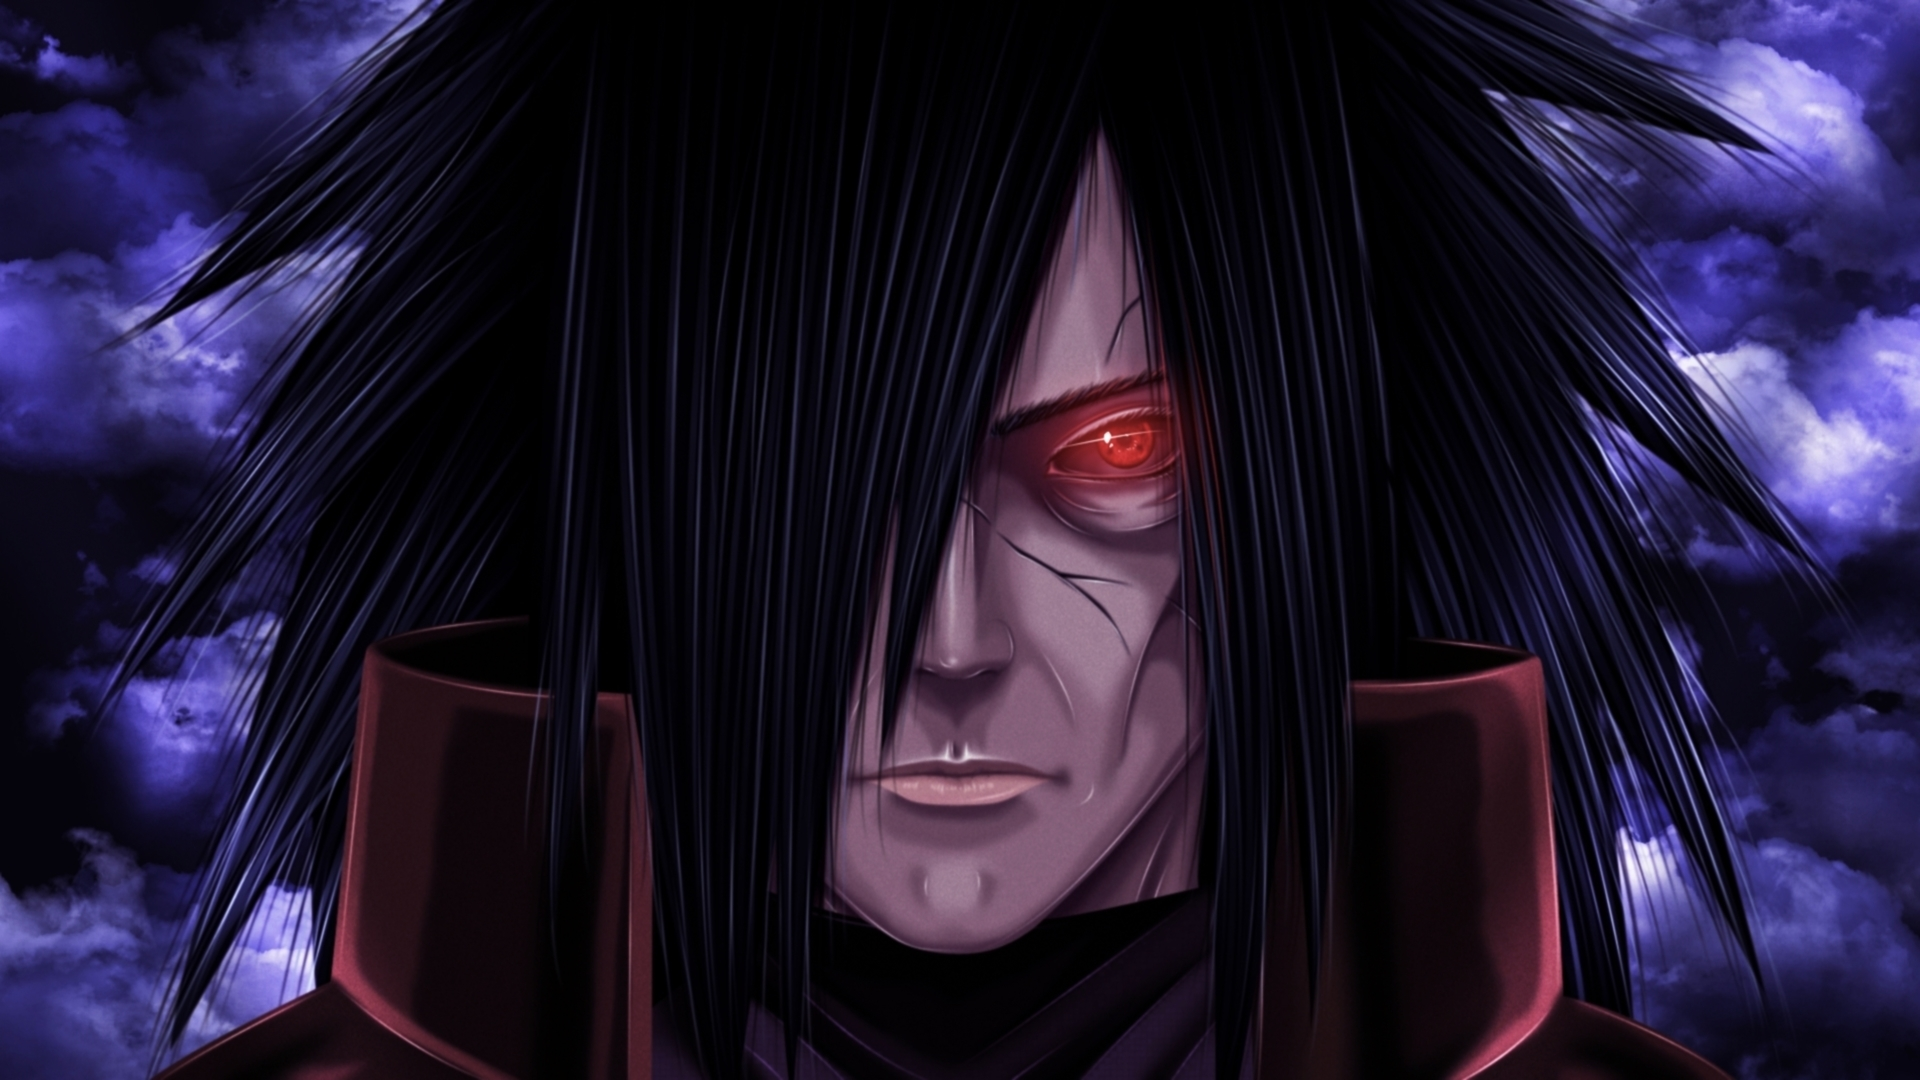 madara uchiha wallpaper HD 1920x1080